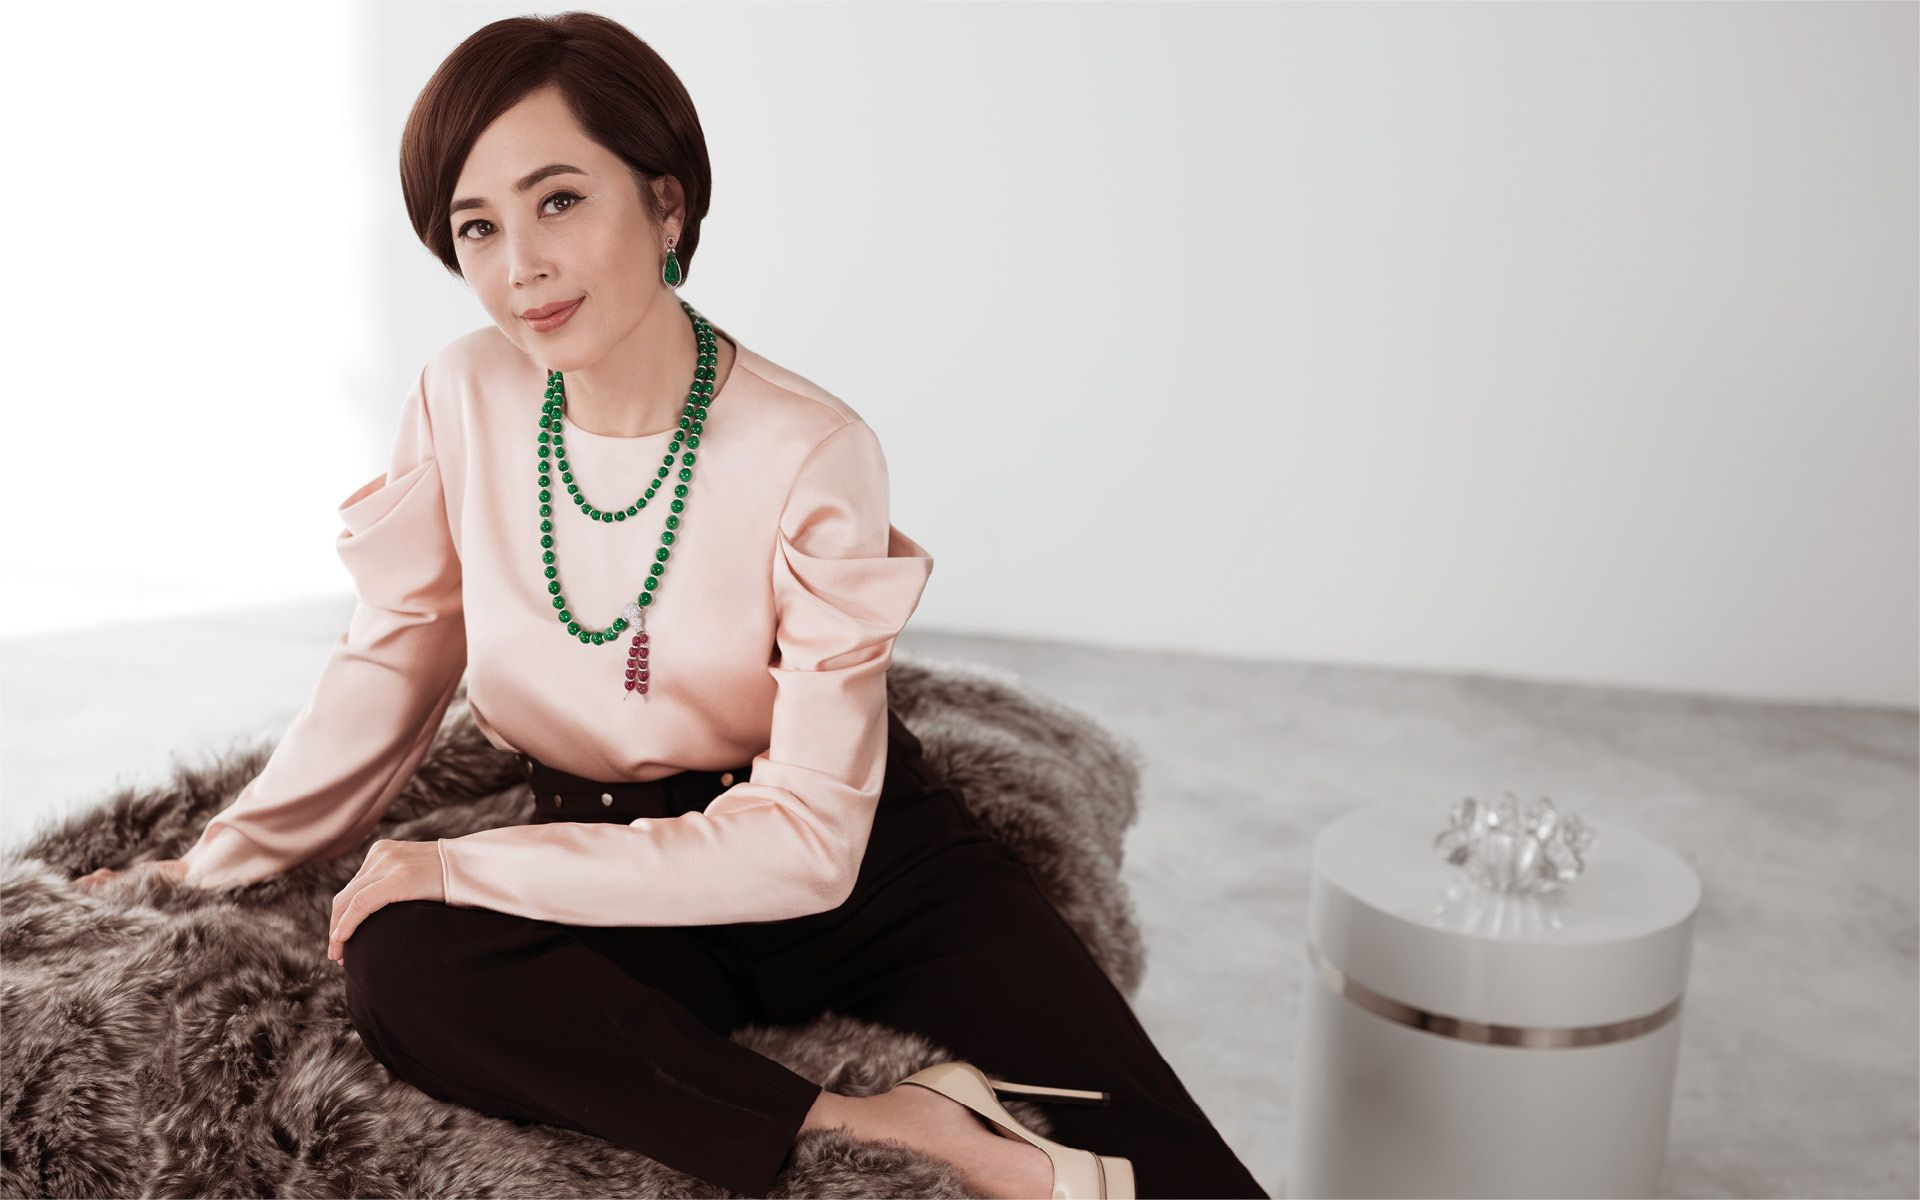 How Cindy Yeung Is Taking Emperor Watch & Jewellery Into The Future